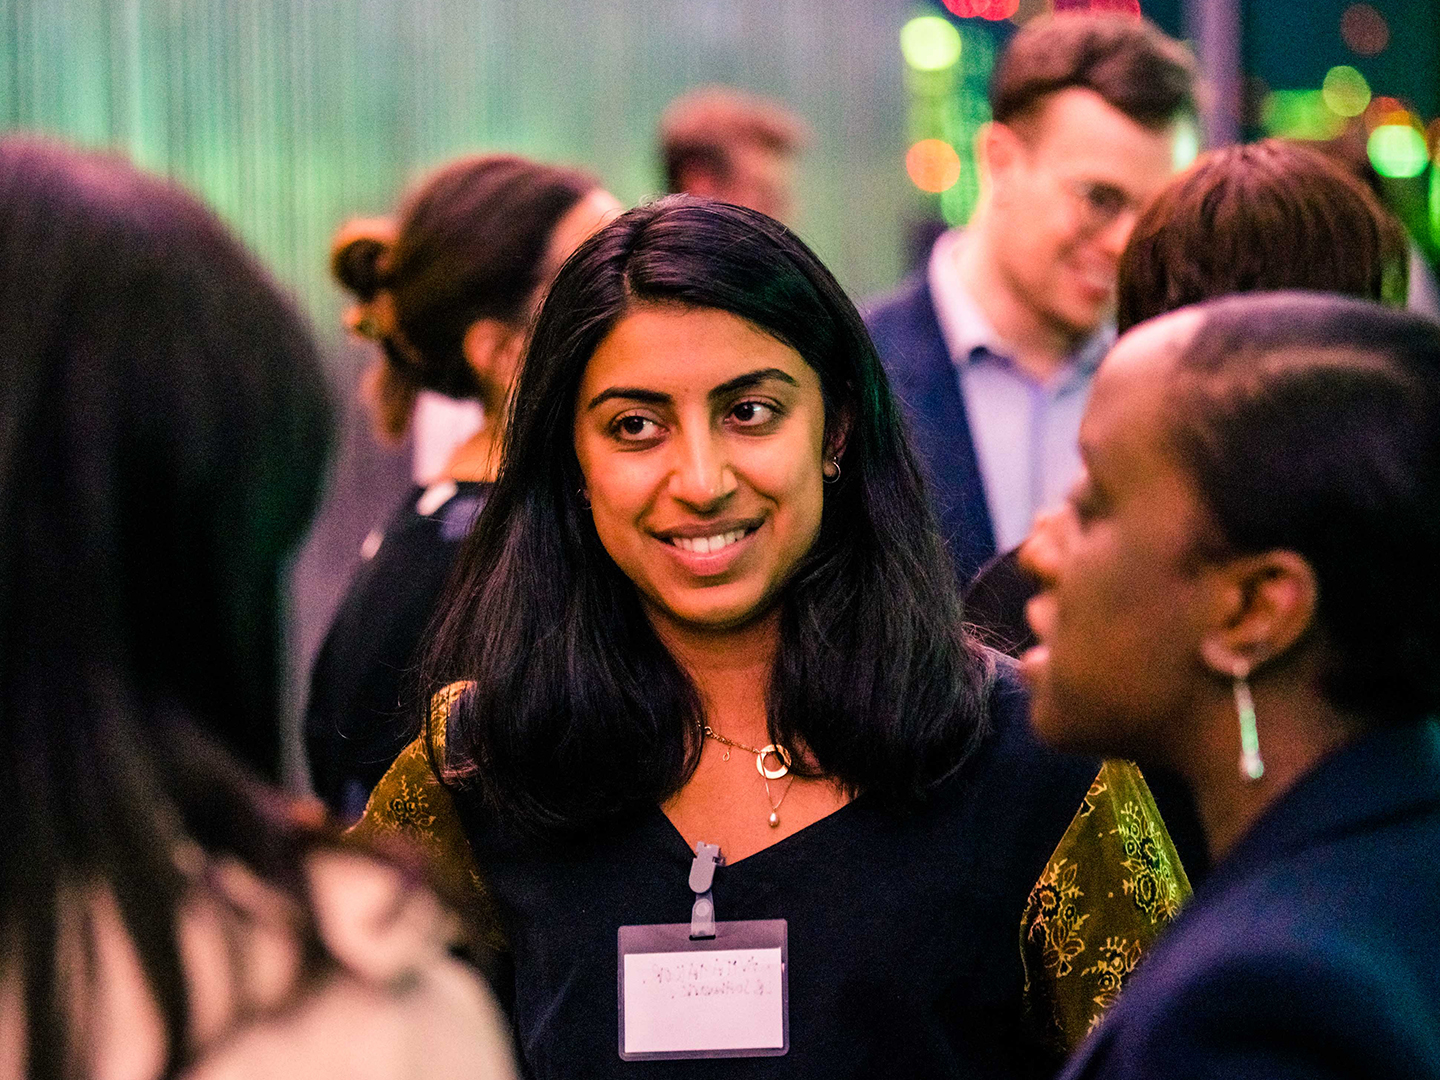 Future of London: Growing the diversity of your teams